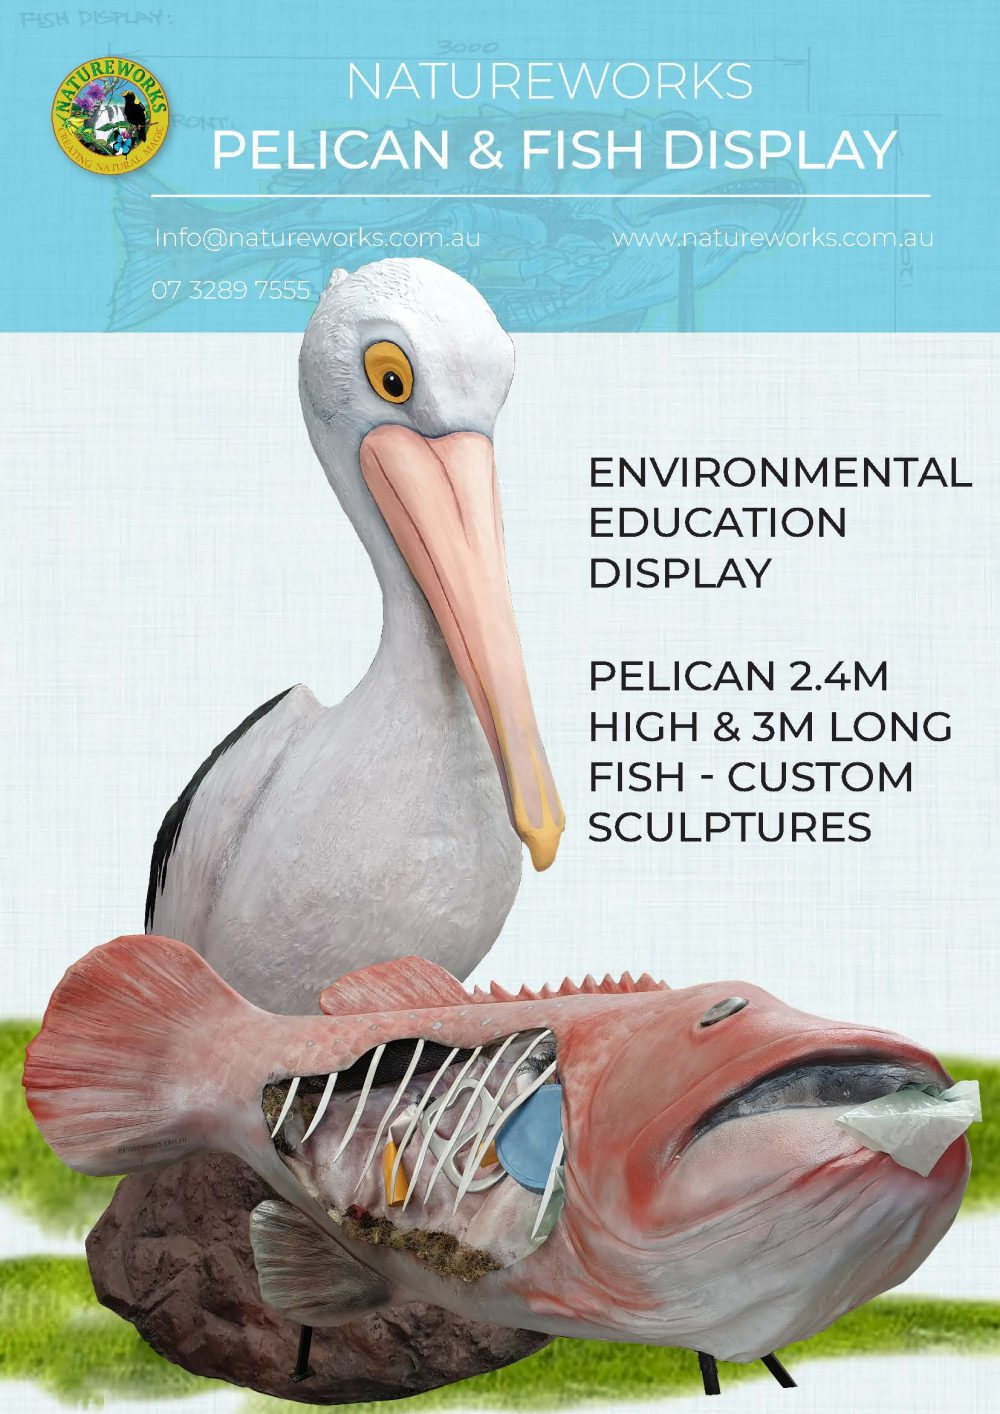 Pelican & fish polluted